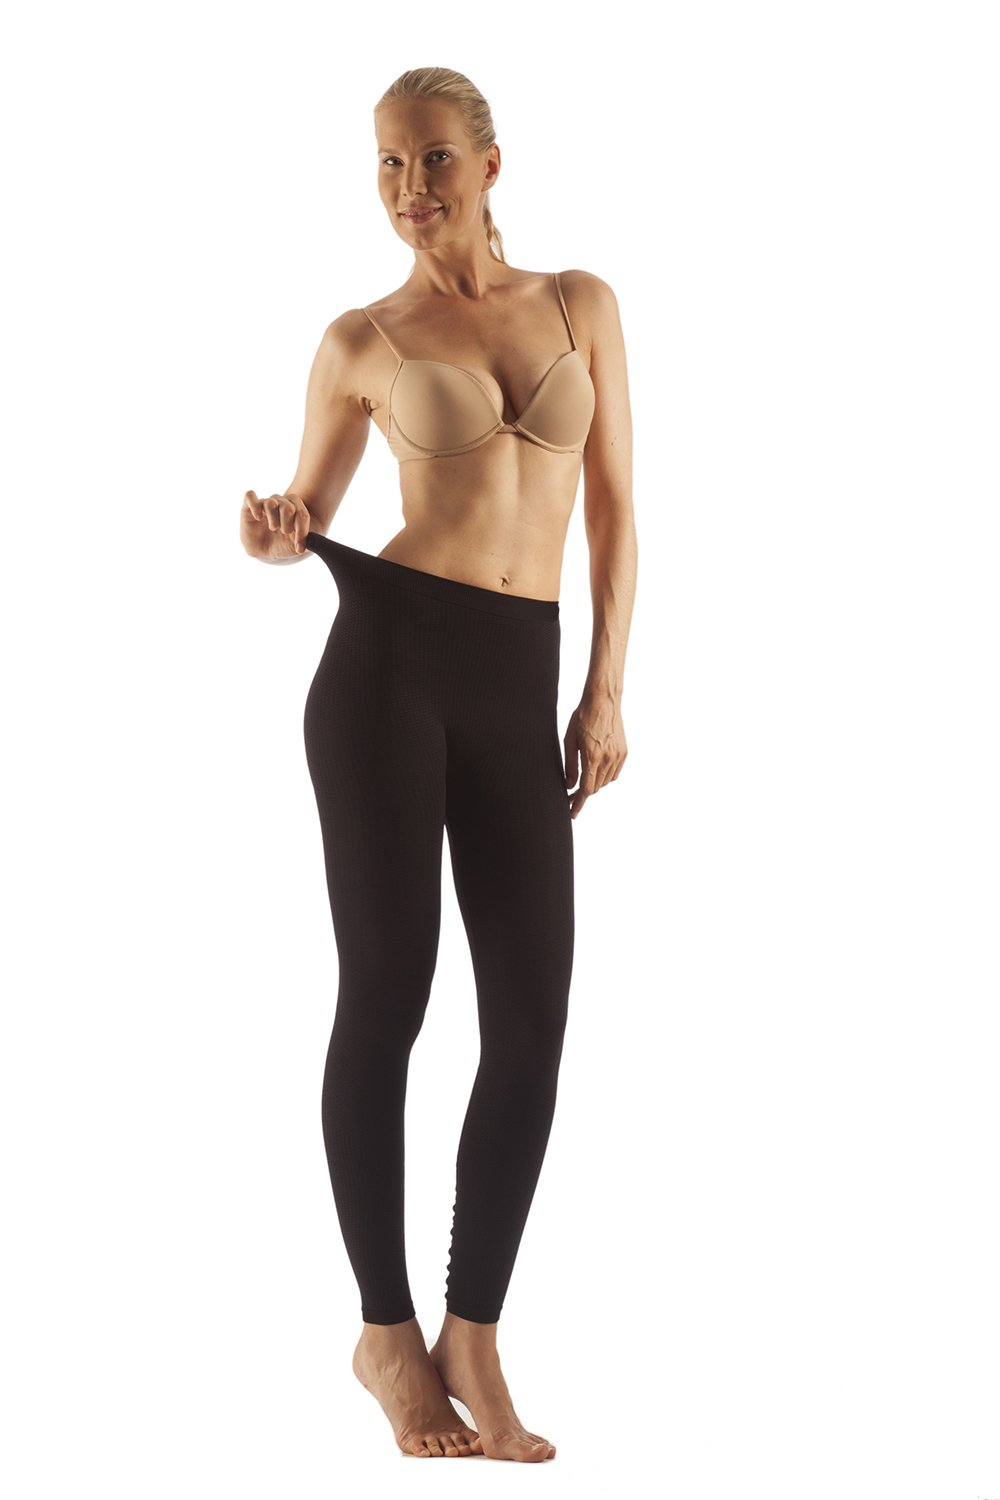 Slimming Massaging Leggings - Anti-Microbial, Milk Protein Fiber (LM-701)